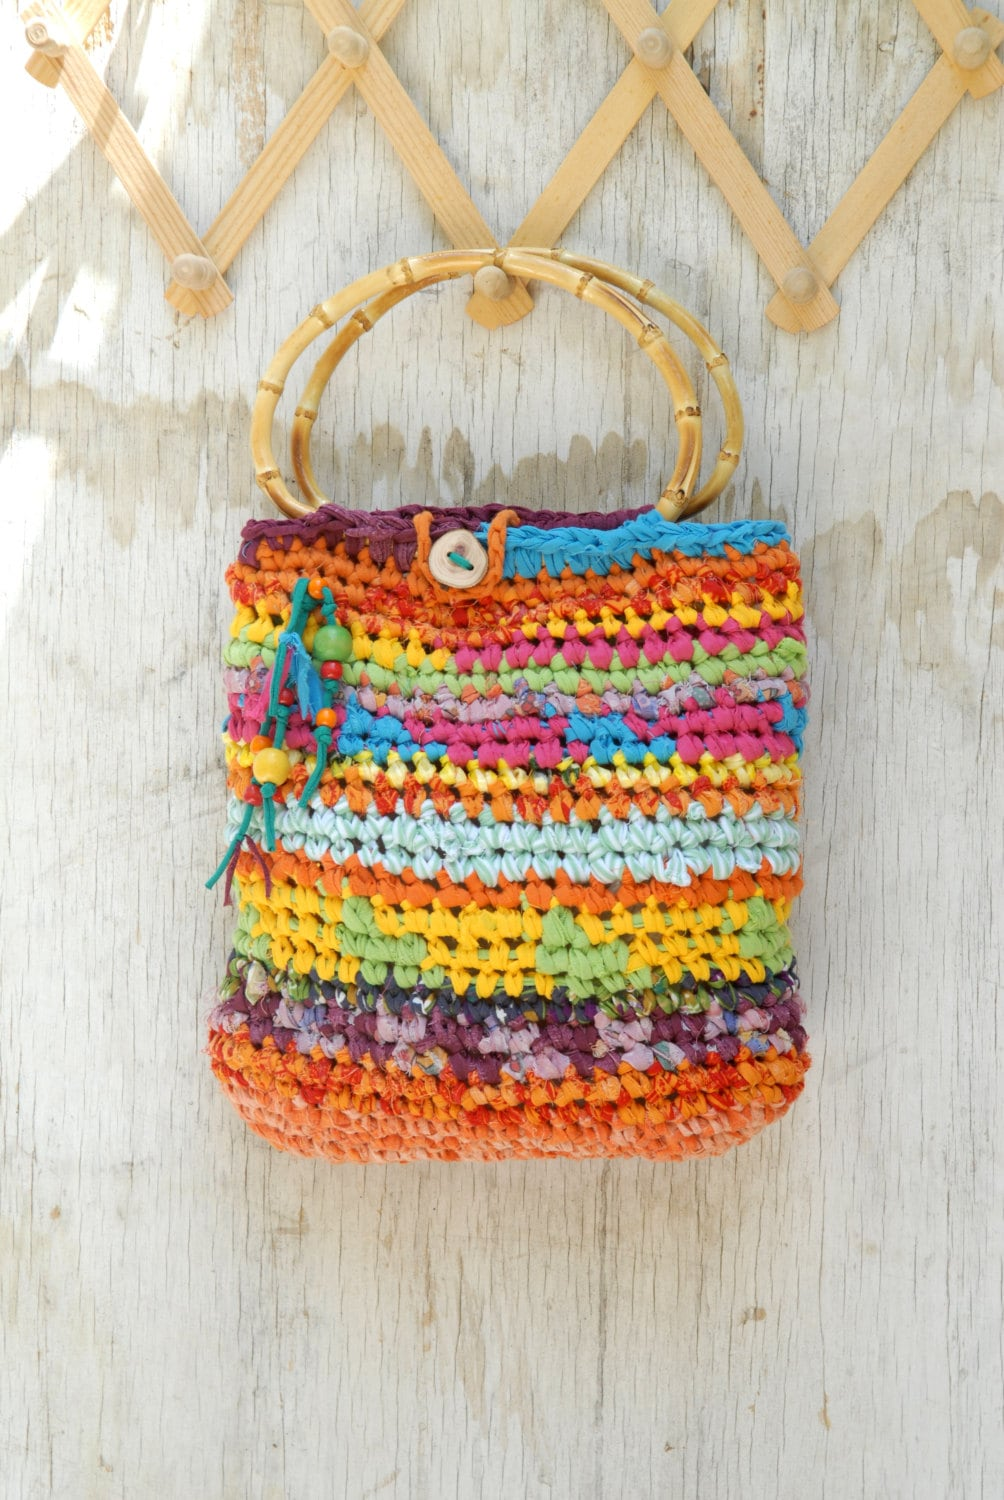 Crochet Bag Bamboo Handles Pattern : Colorful crocheted purse with bamboo handles Joyful summer